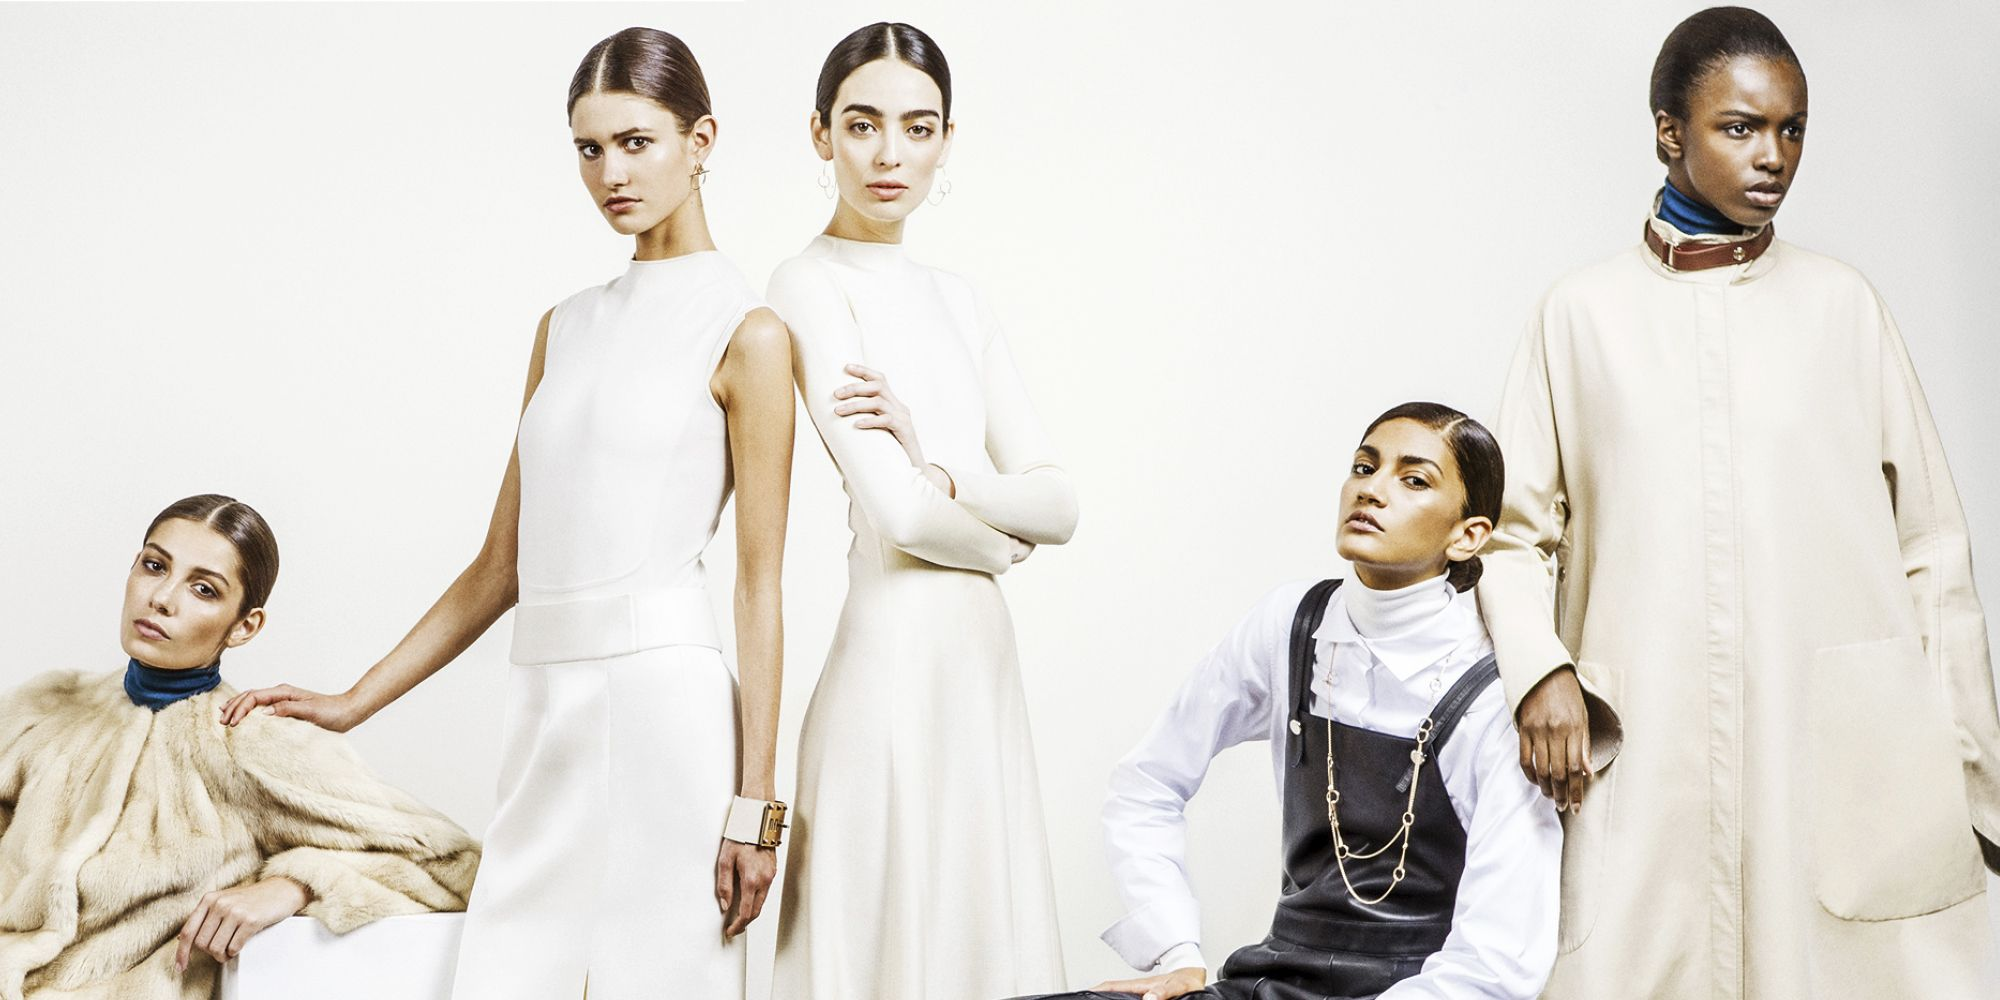 Hermes New Creative Director Strives To Make The Brand Relevant Again